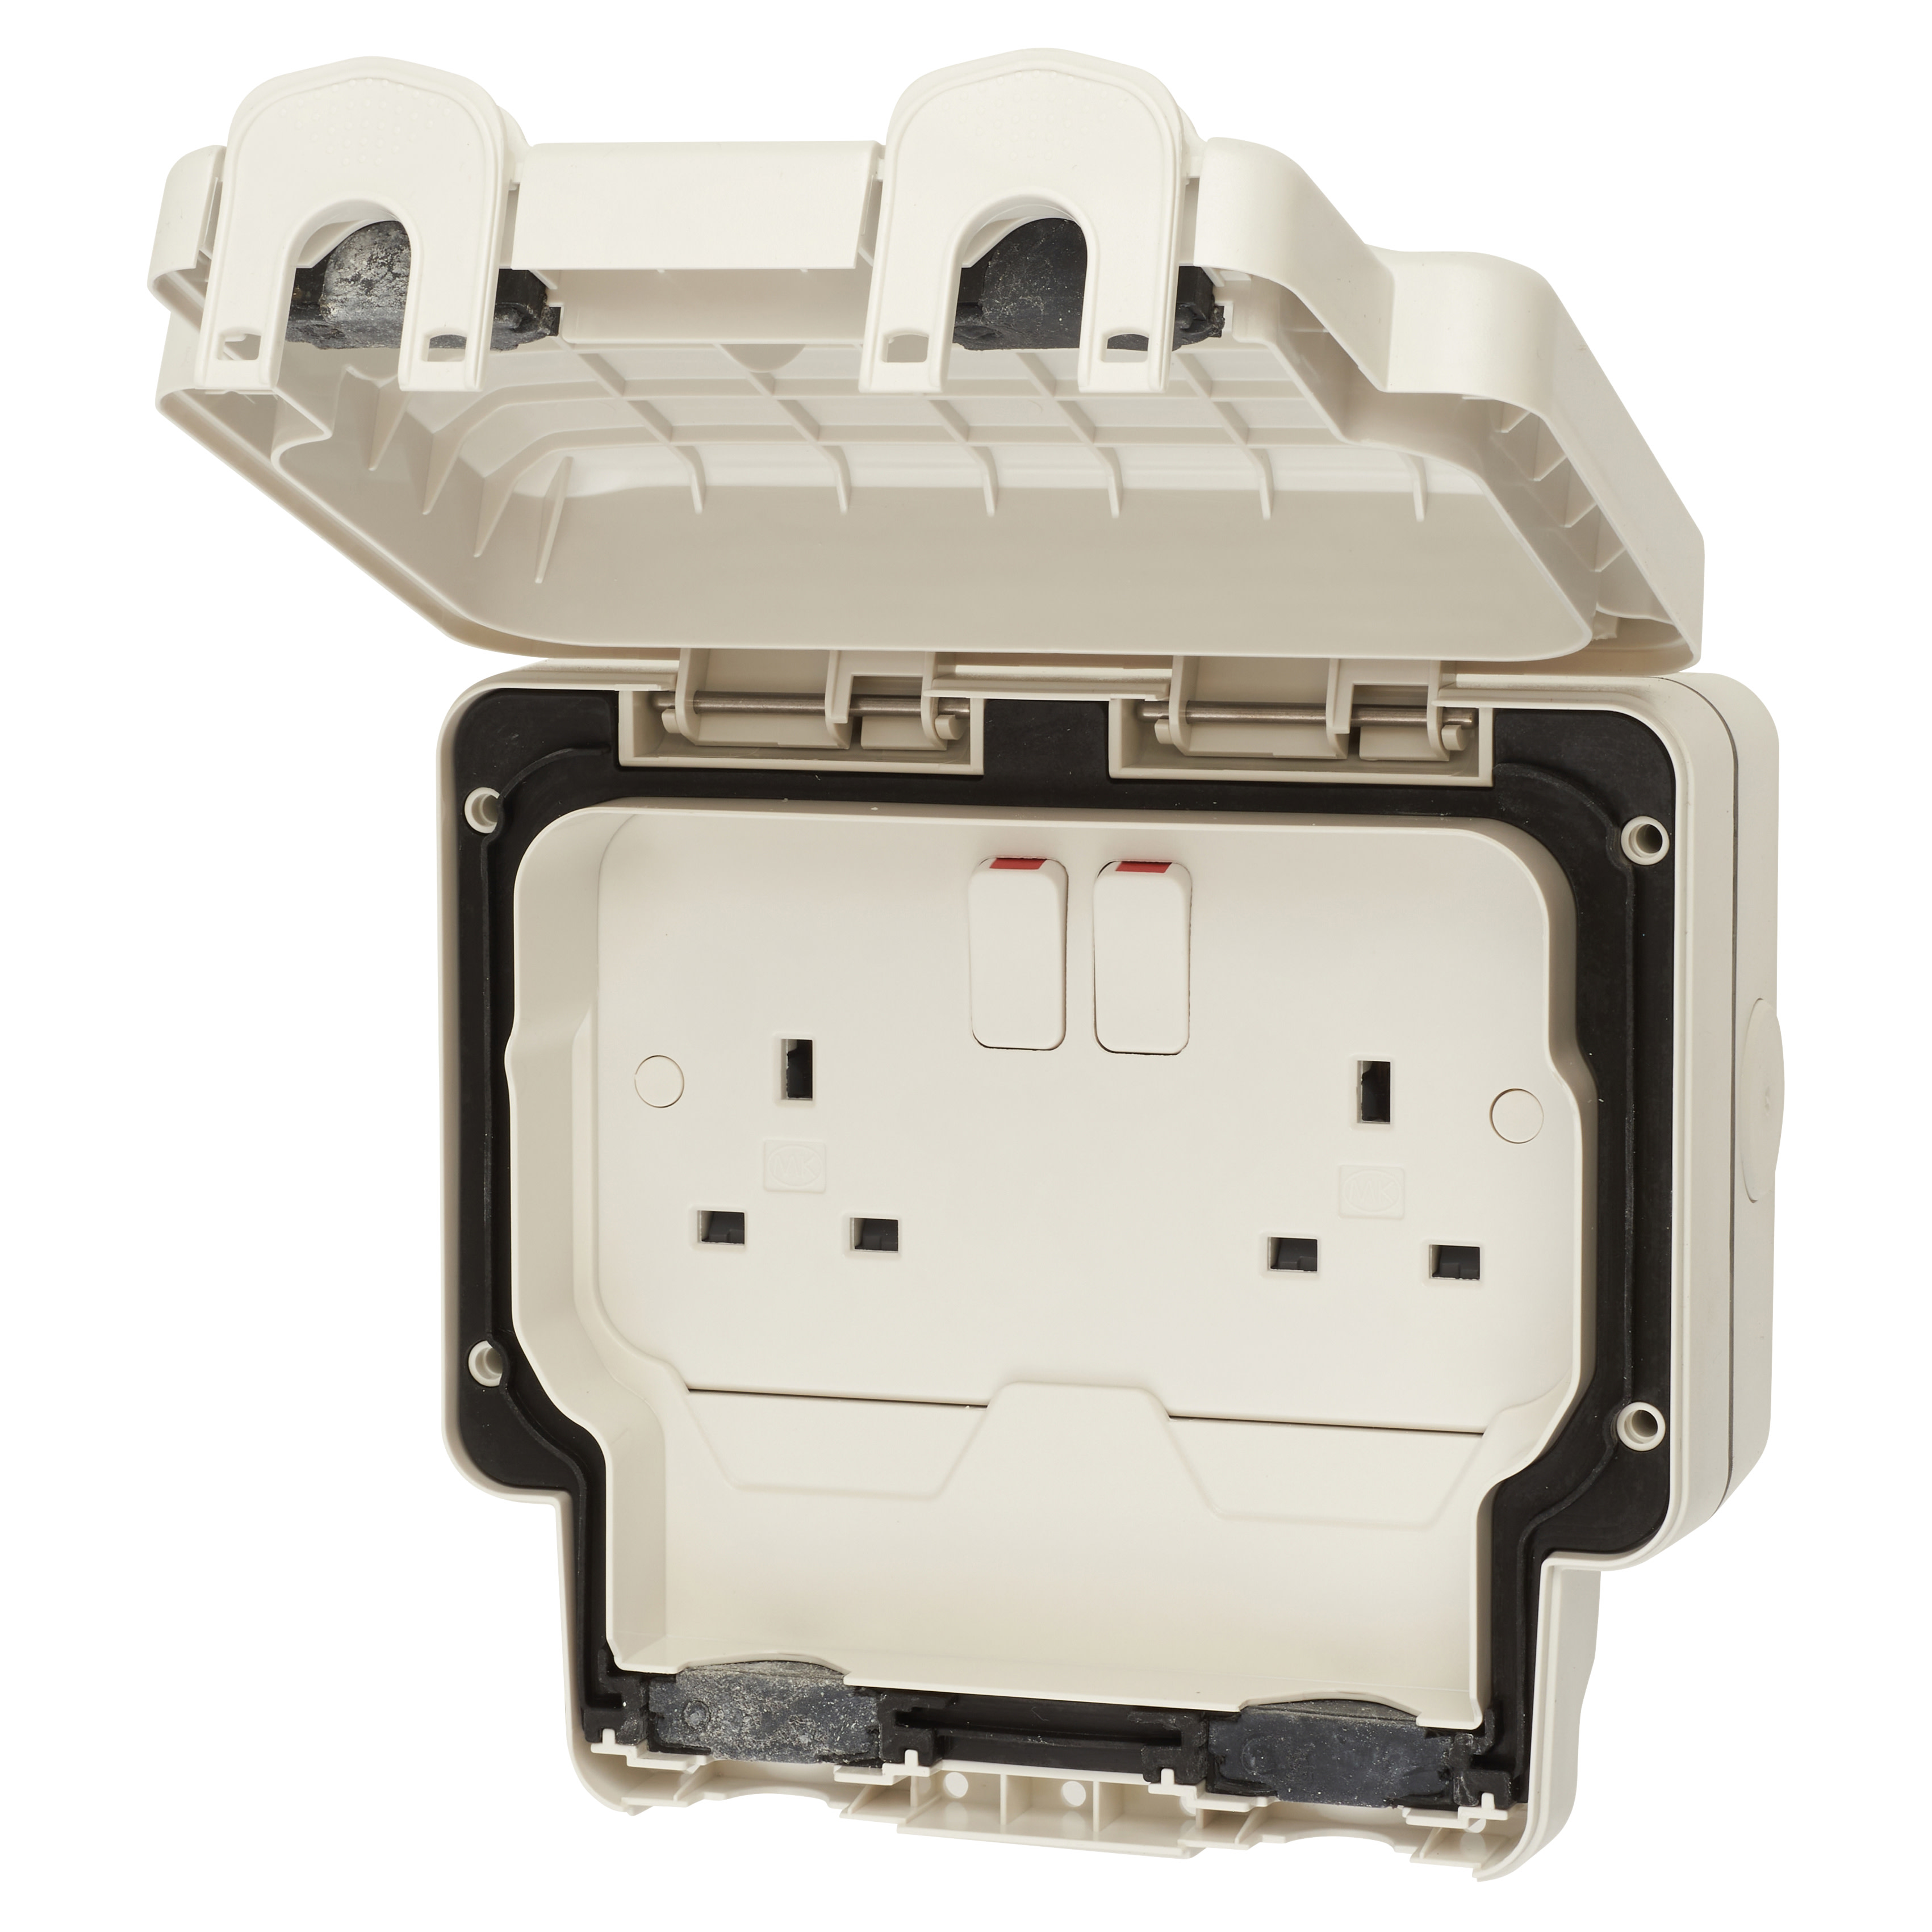 MK Masterseal Plus 13A IP66 2 Gang Weatherproof Switched Outdoor Socket - White)